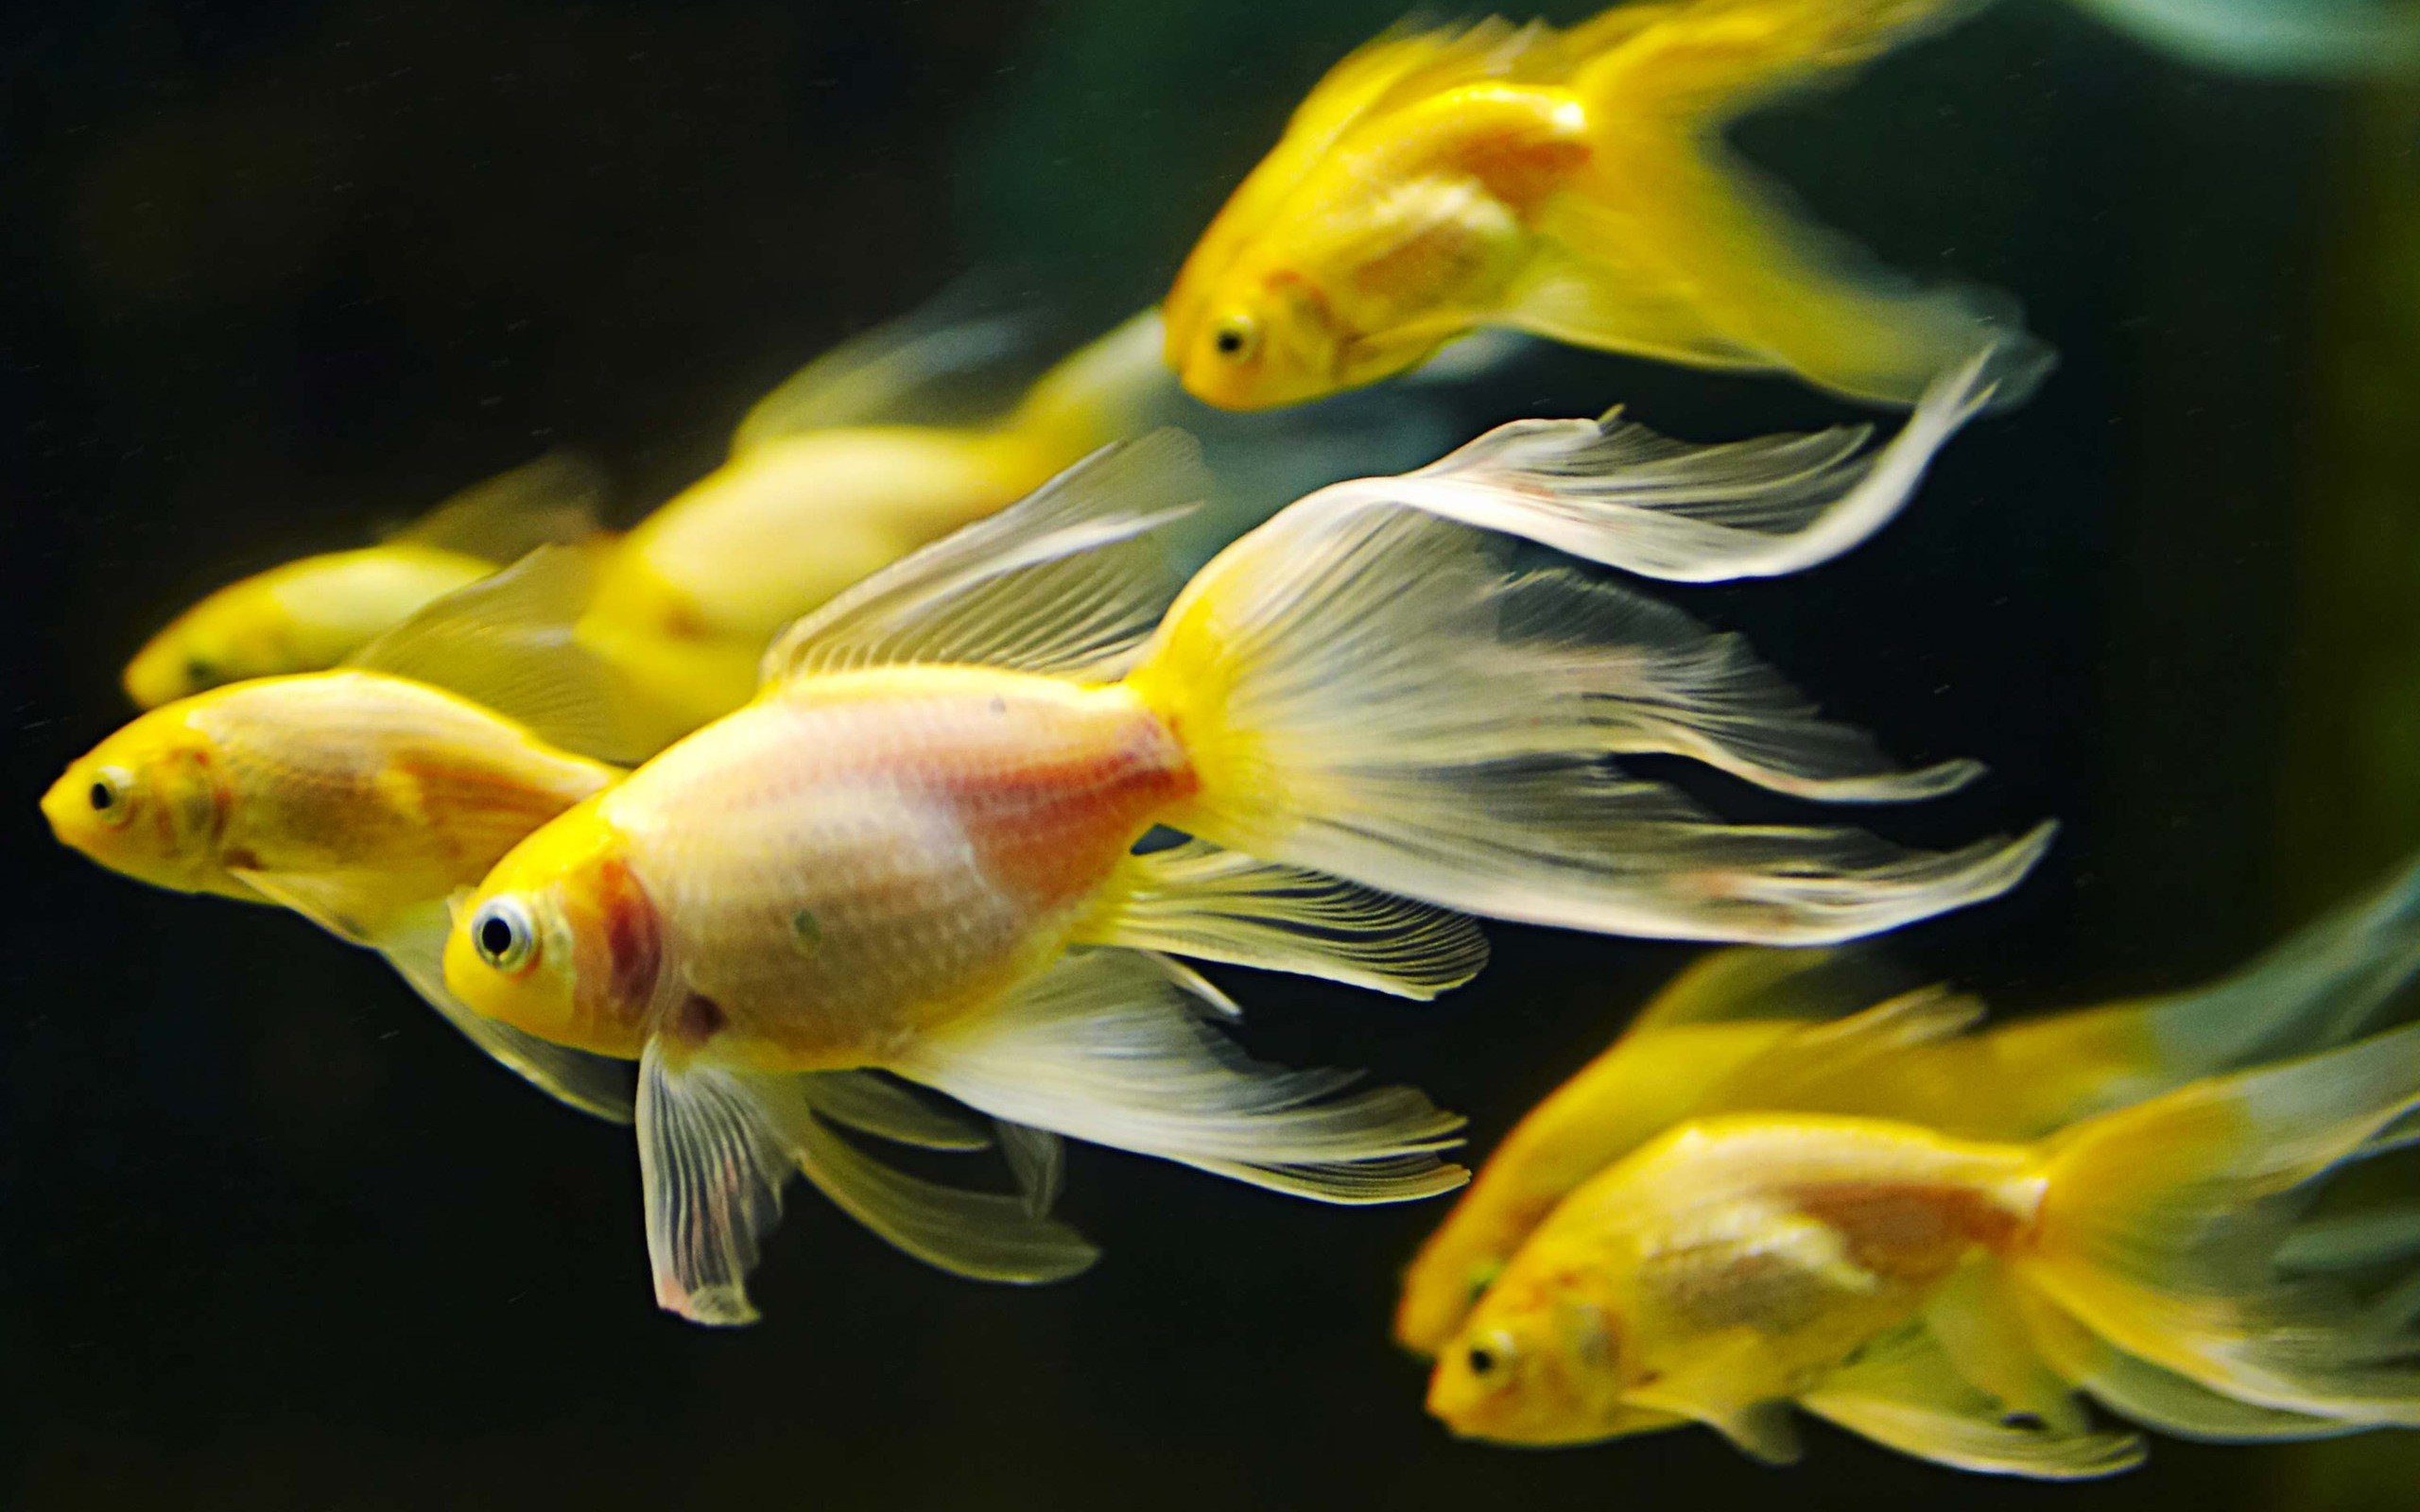 Res: 2560x1600, HD Wallpaper | Background Image ID:324834.  Animal Goldfish